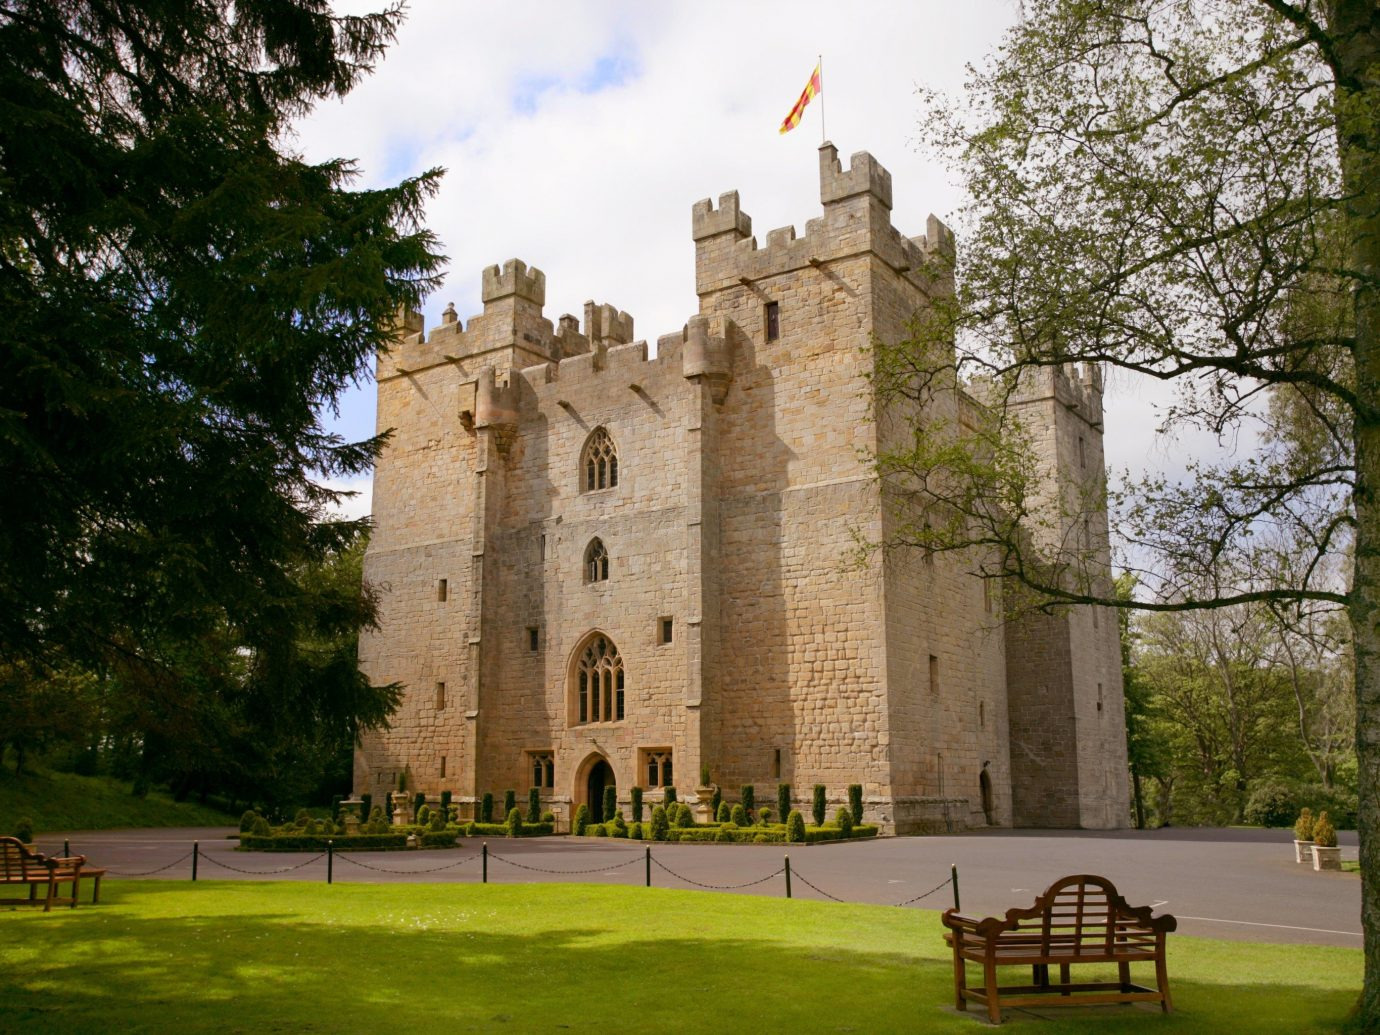 Hotels tree grass outdoor park building tower château stately home castle estate water castle old monastery abbey stone walkway